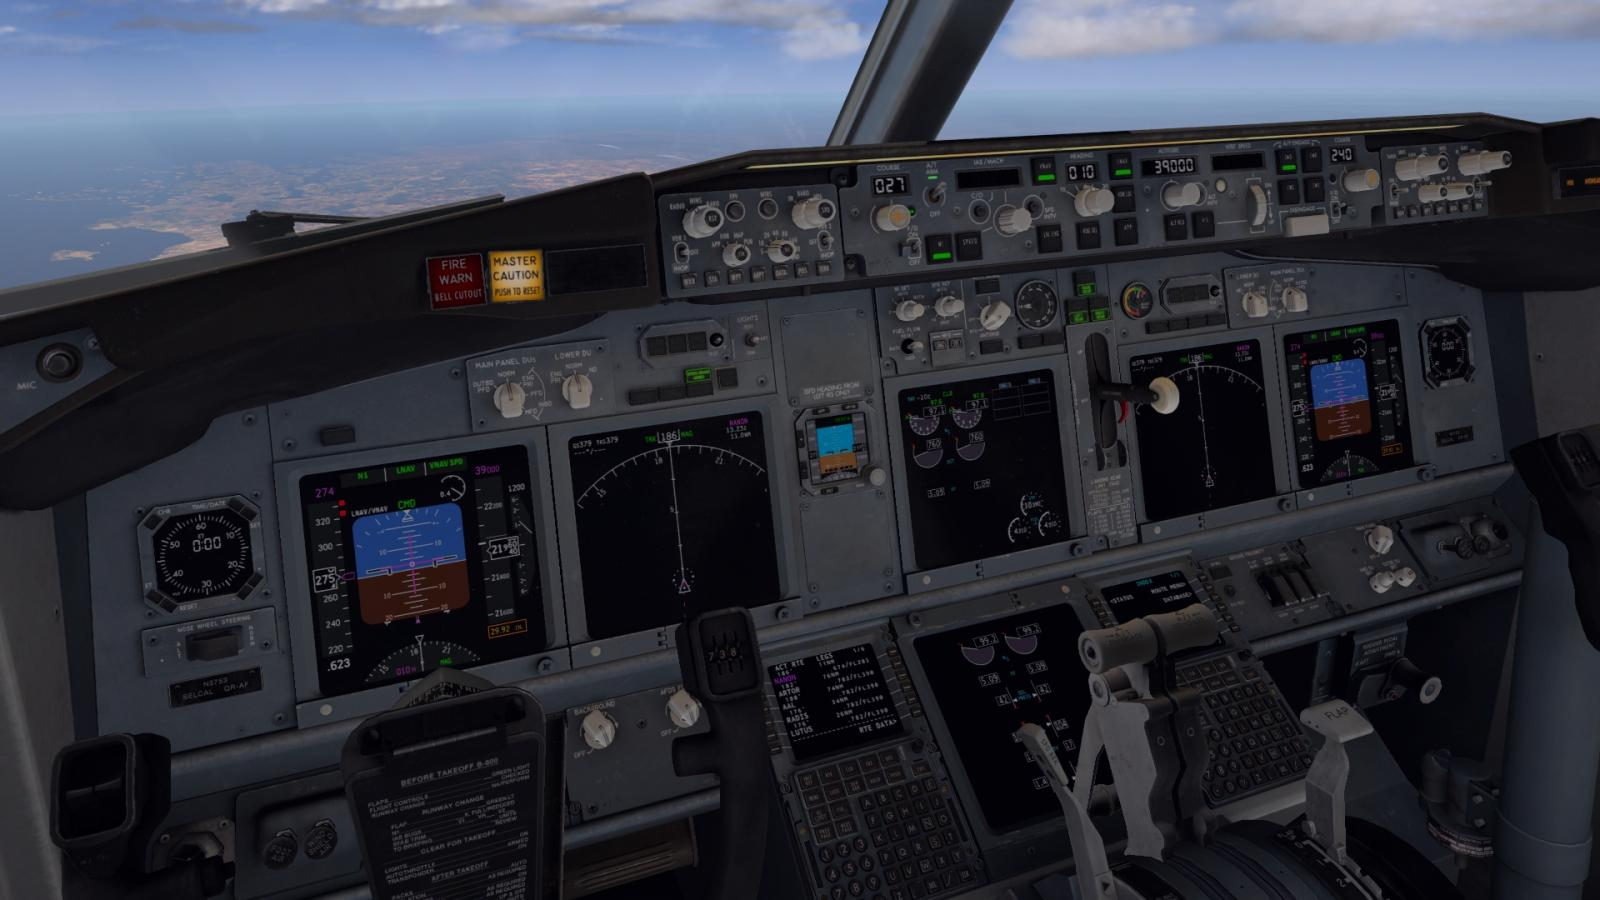 Landing gear wont retract - General X-Plane Forum - X-Plane Org Forum